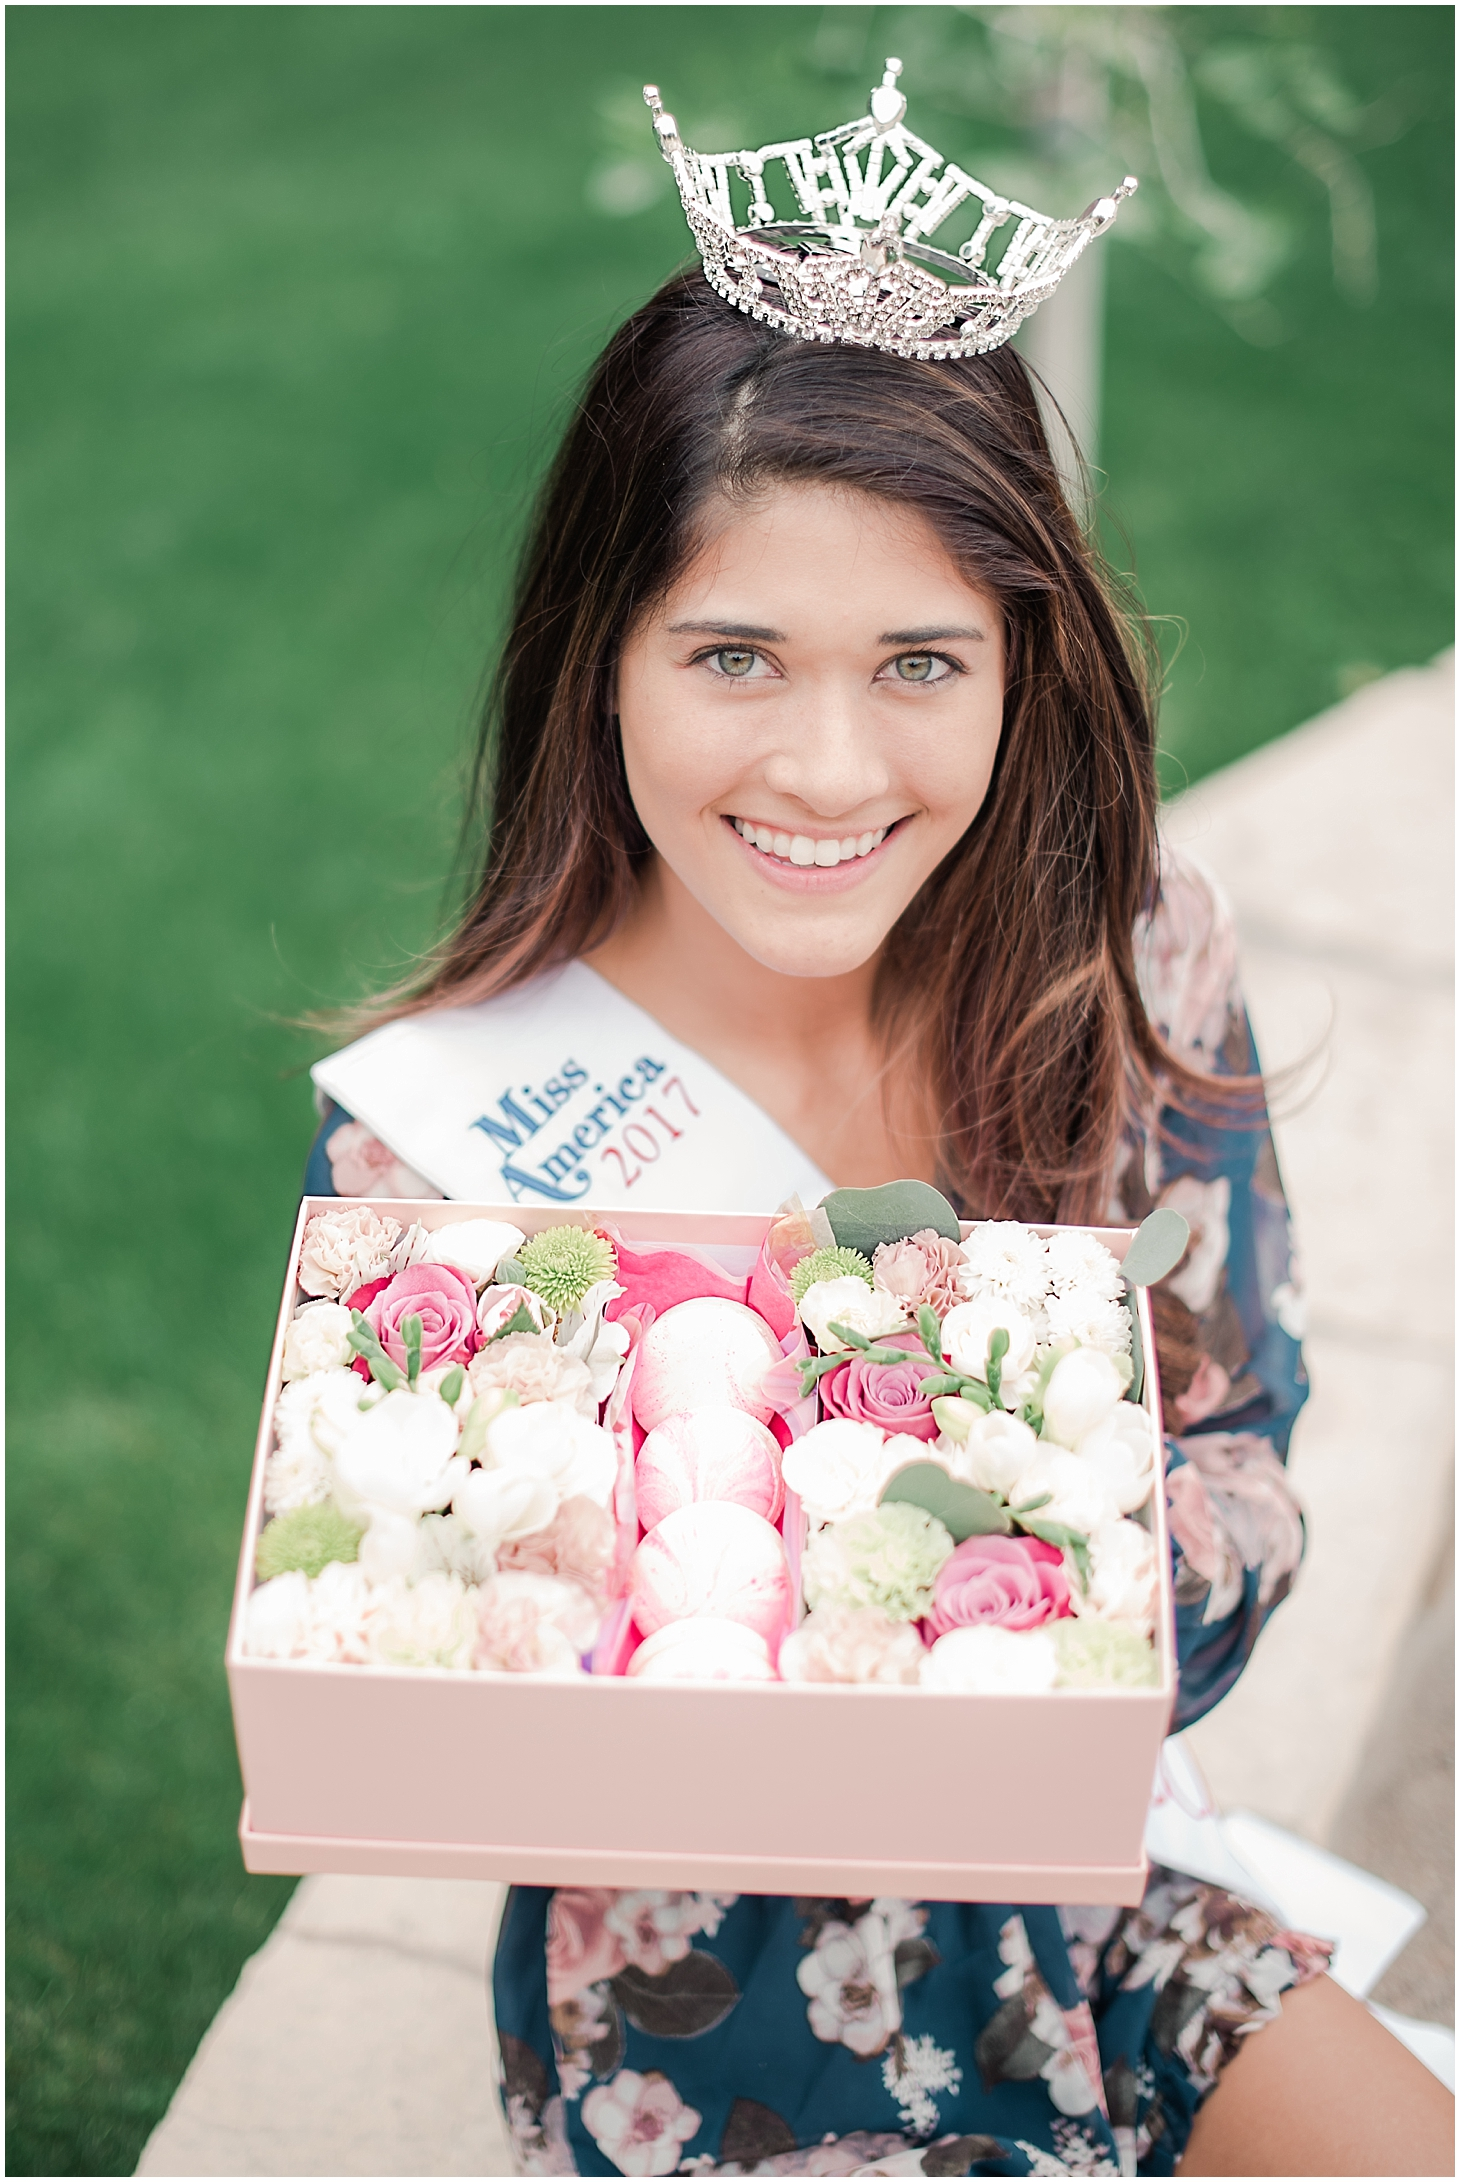 Beautiful box filled with an arrangement of lovely flowers and delicious French macarons made with love by Flower from Lower, and held by Miss Maricopa County 2017 Courtney Ortega. Photo taken by Jade Min Photography.